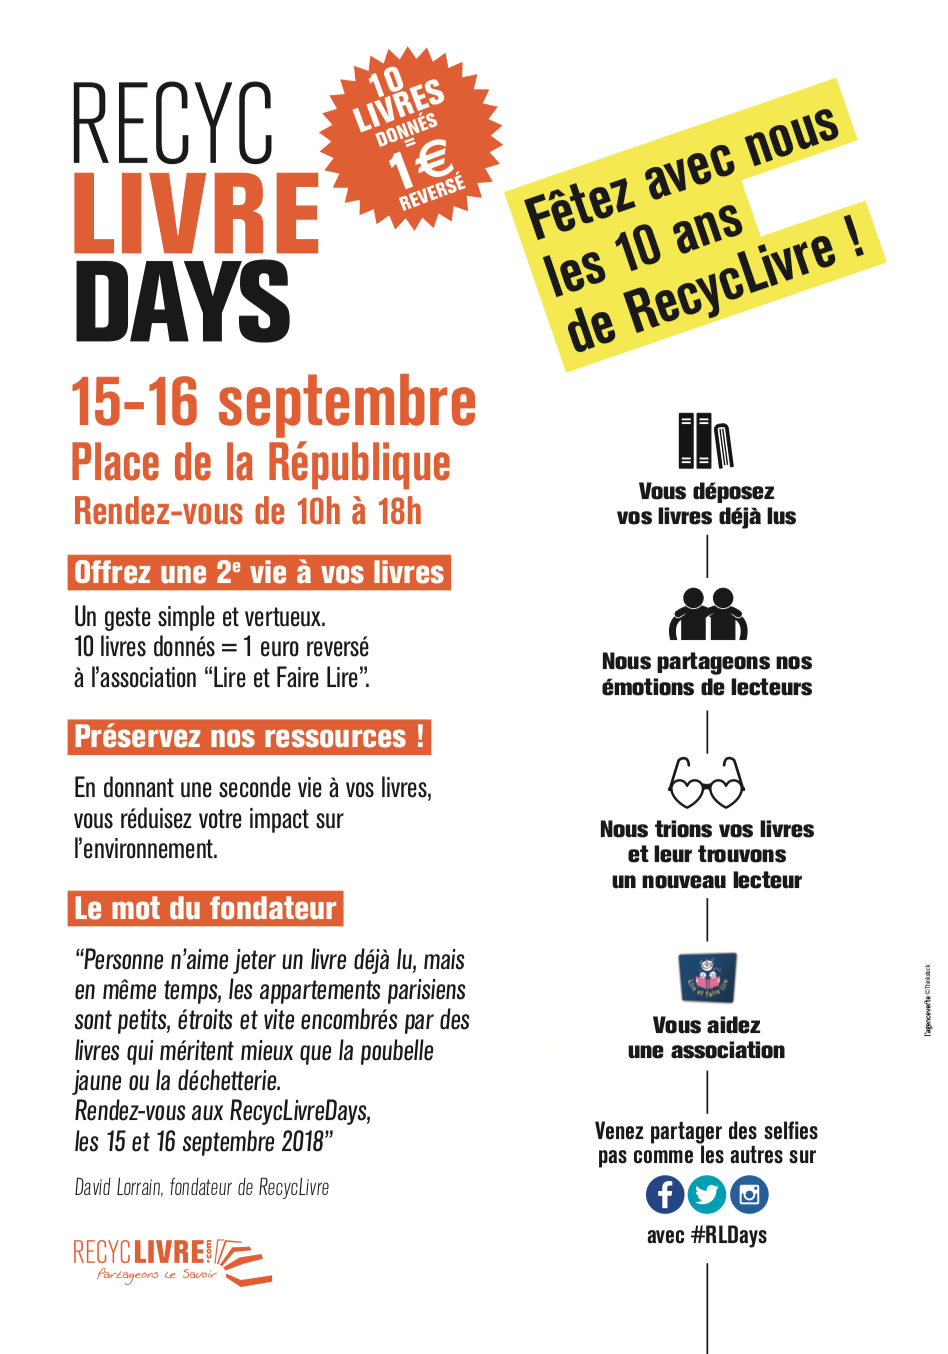 flyer-recyclivres-days